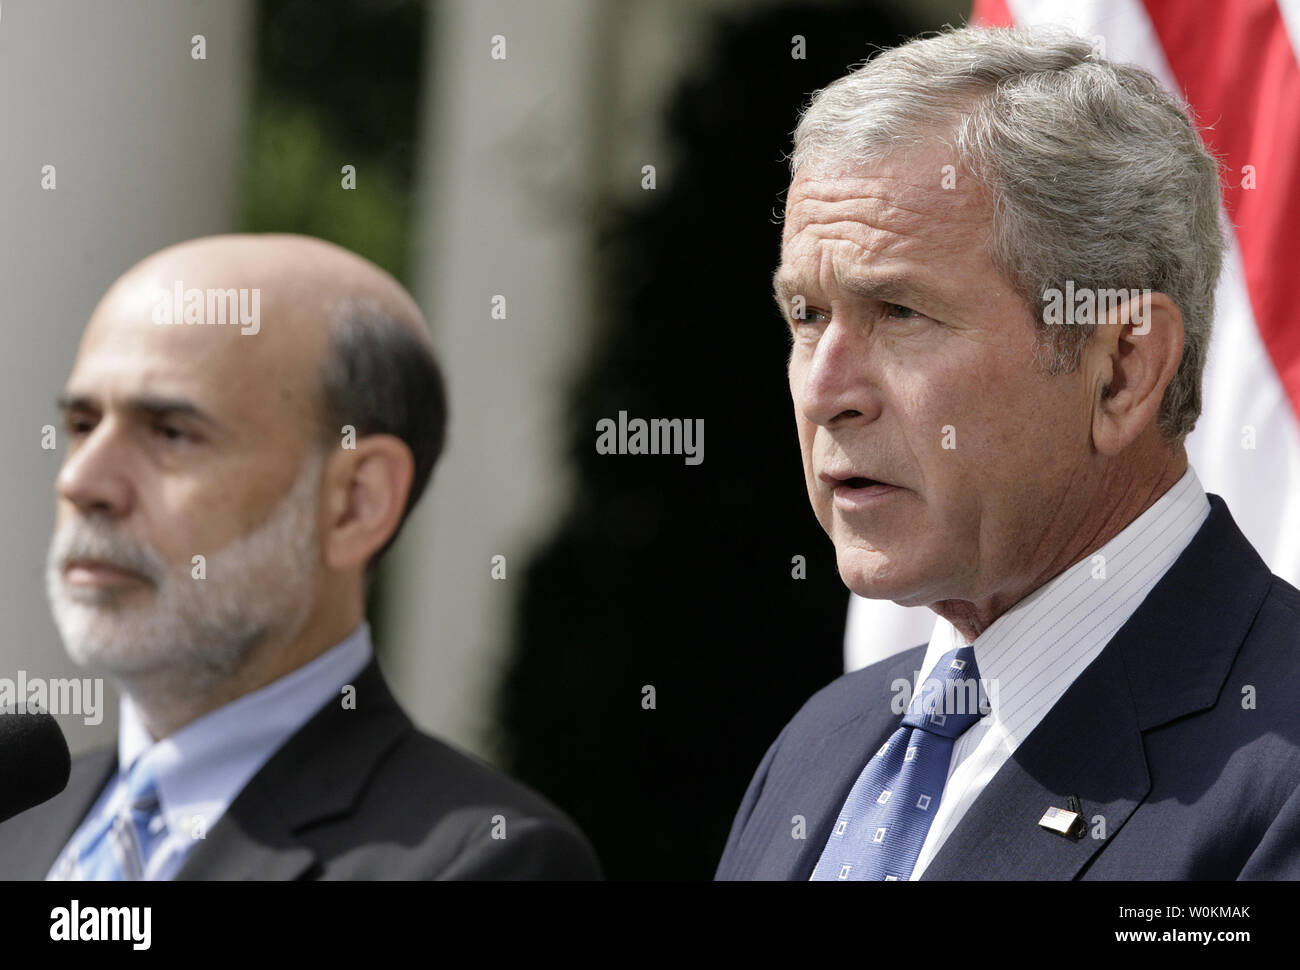 U S  President George W  Bush (R) jointed by Federal Reserve